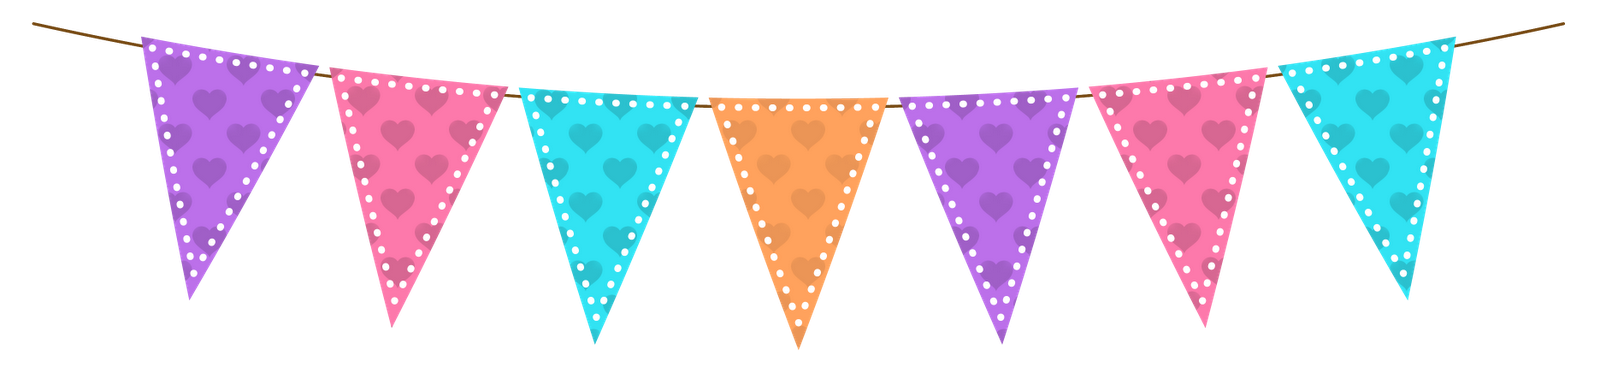 Single clipart bunting Morning clipart farewell Bunting Pink